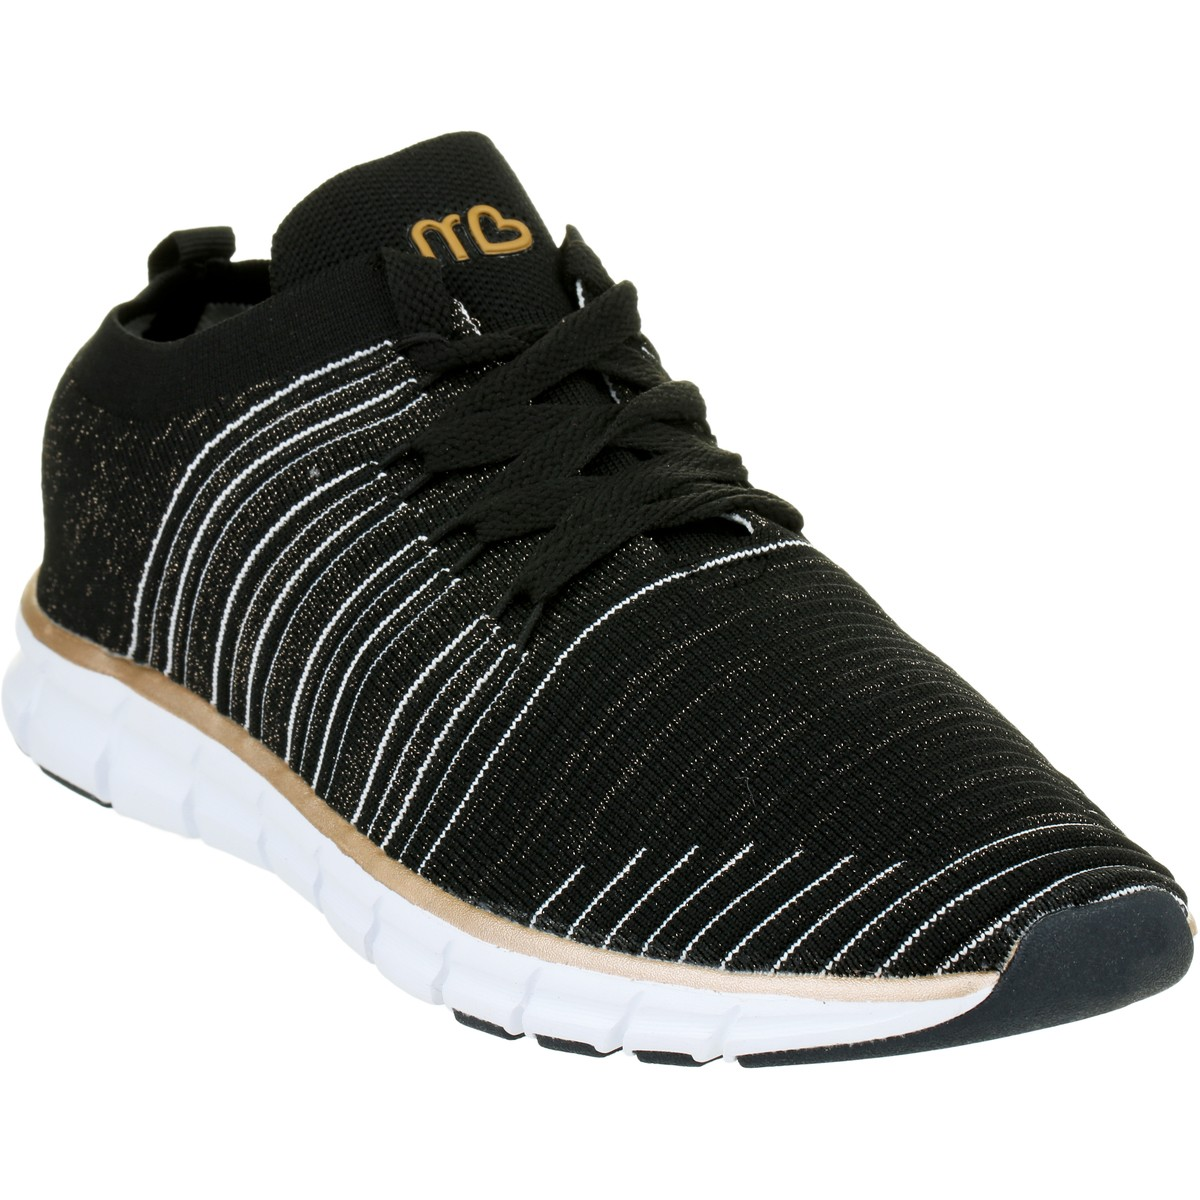 Big W Runners Mb Active By Michelle Bridges Women 39s Running Shoe Black